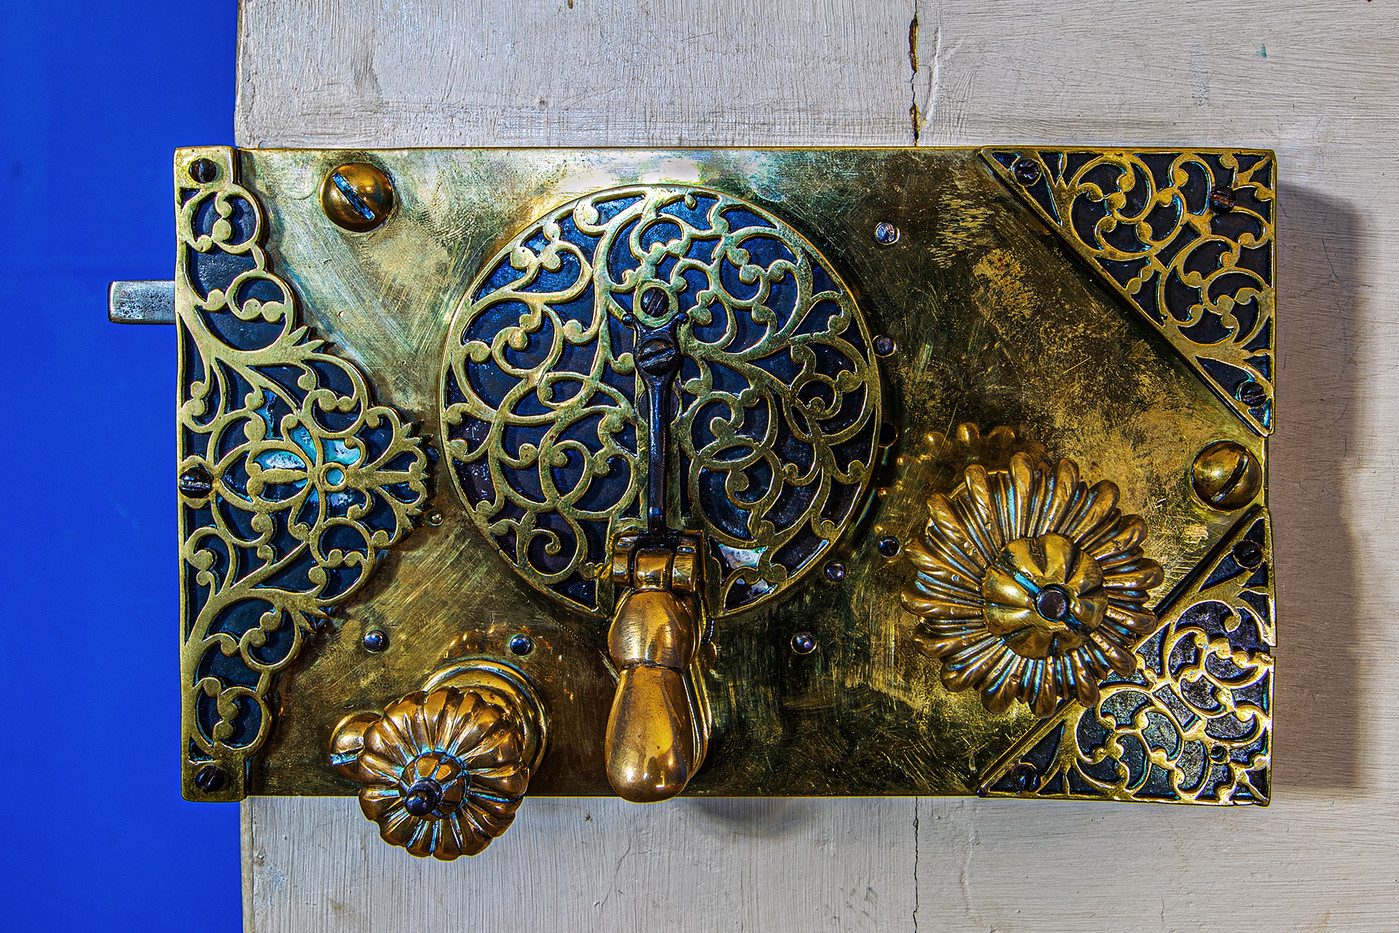 18 DOOR LOCK DETAIL BLUE BEDROOM STRAWBERRY HILL HOUSE by Philip Easom